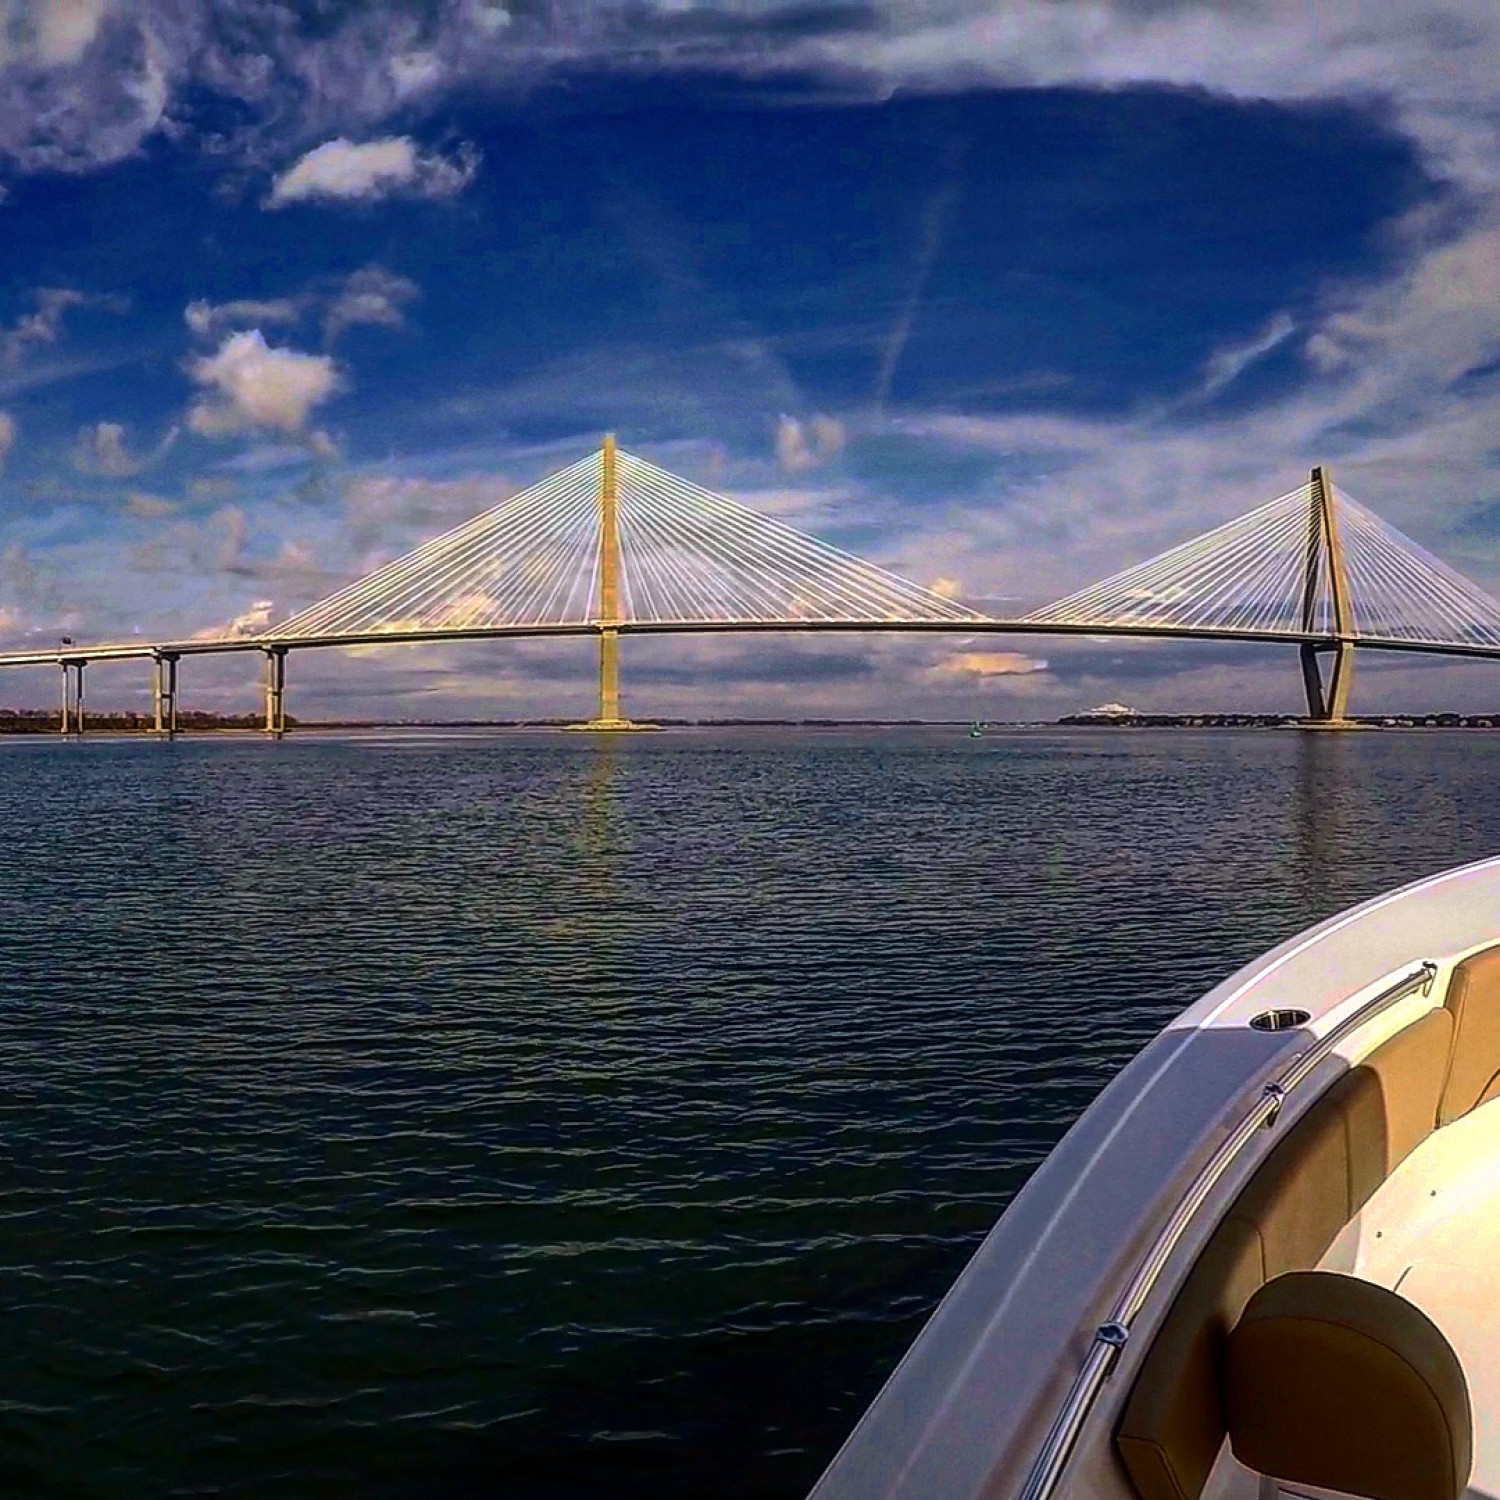 Title: Cooper River Bridge - On board their Sportsman Heritage 231 Center Console - Location: Charleston, SC. Participating in the Photo Contest #SportsmanFebruary2018